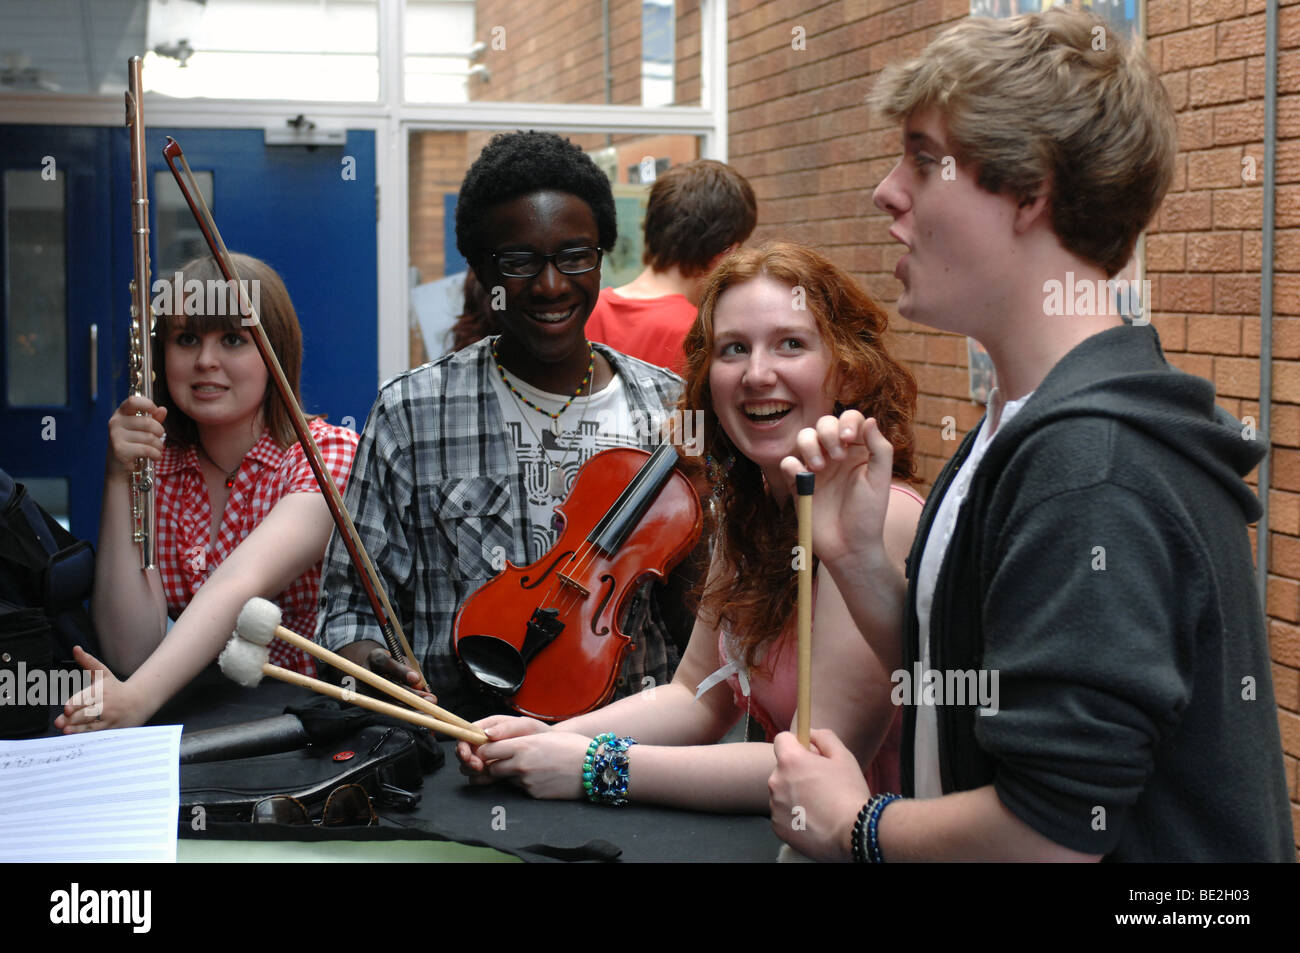 Music students practice at sixth form further education college Stock Photo